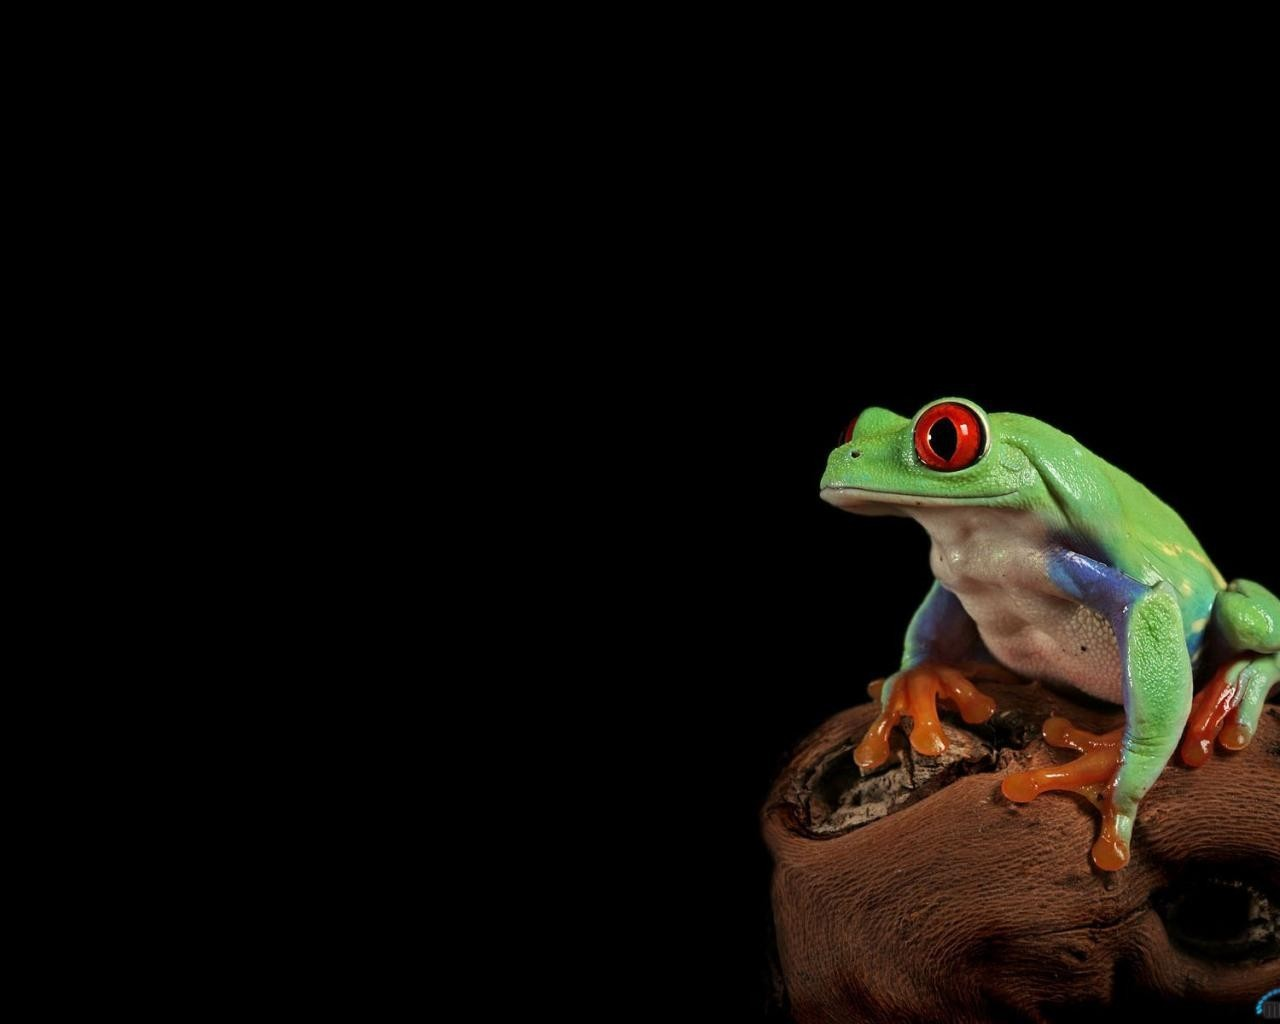 Animals Frogs Red-Eyed Tree HD Wallpaper